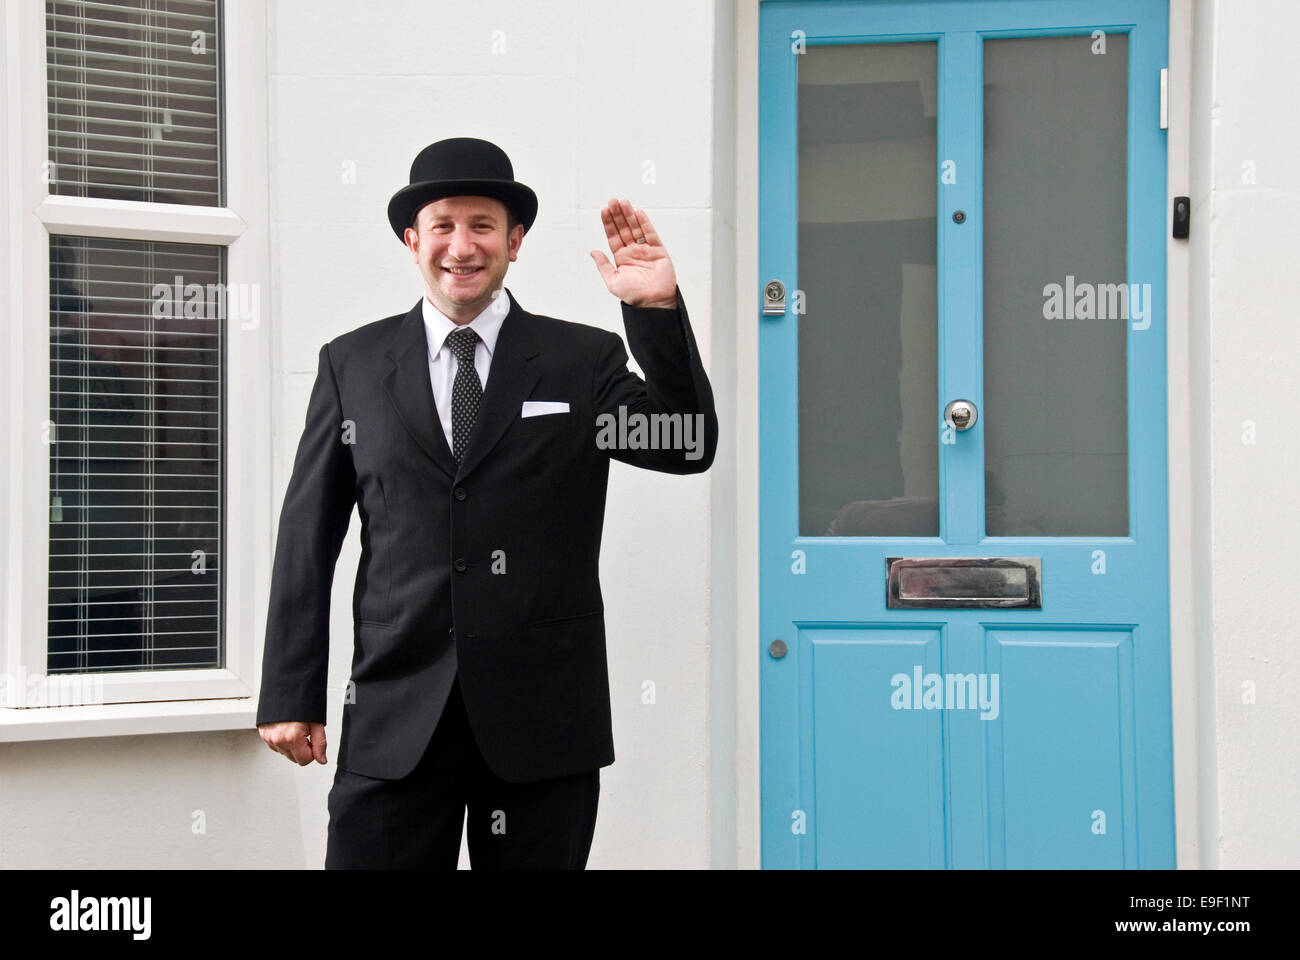 A man dressed as Mr Ben in a black suit and bowler hat stands ...